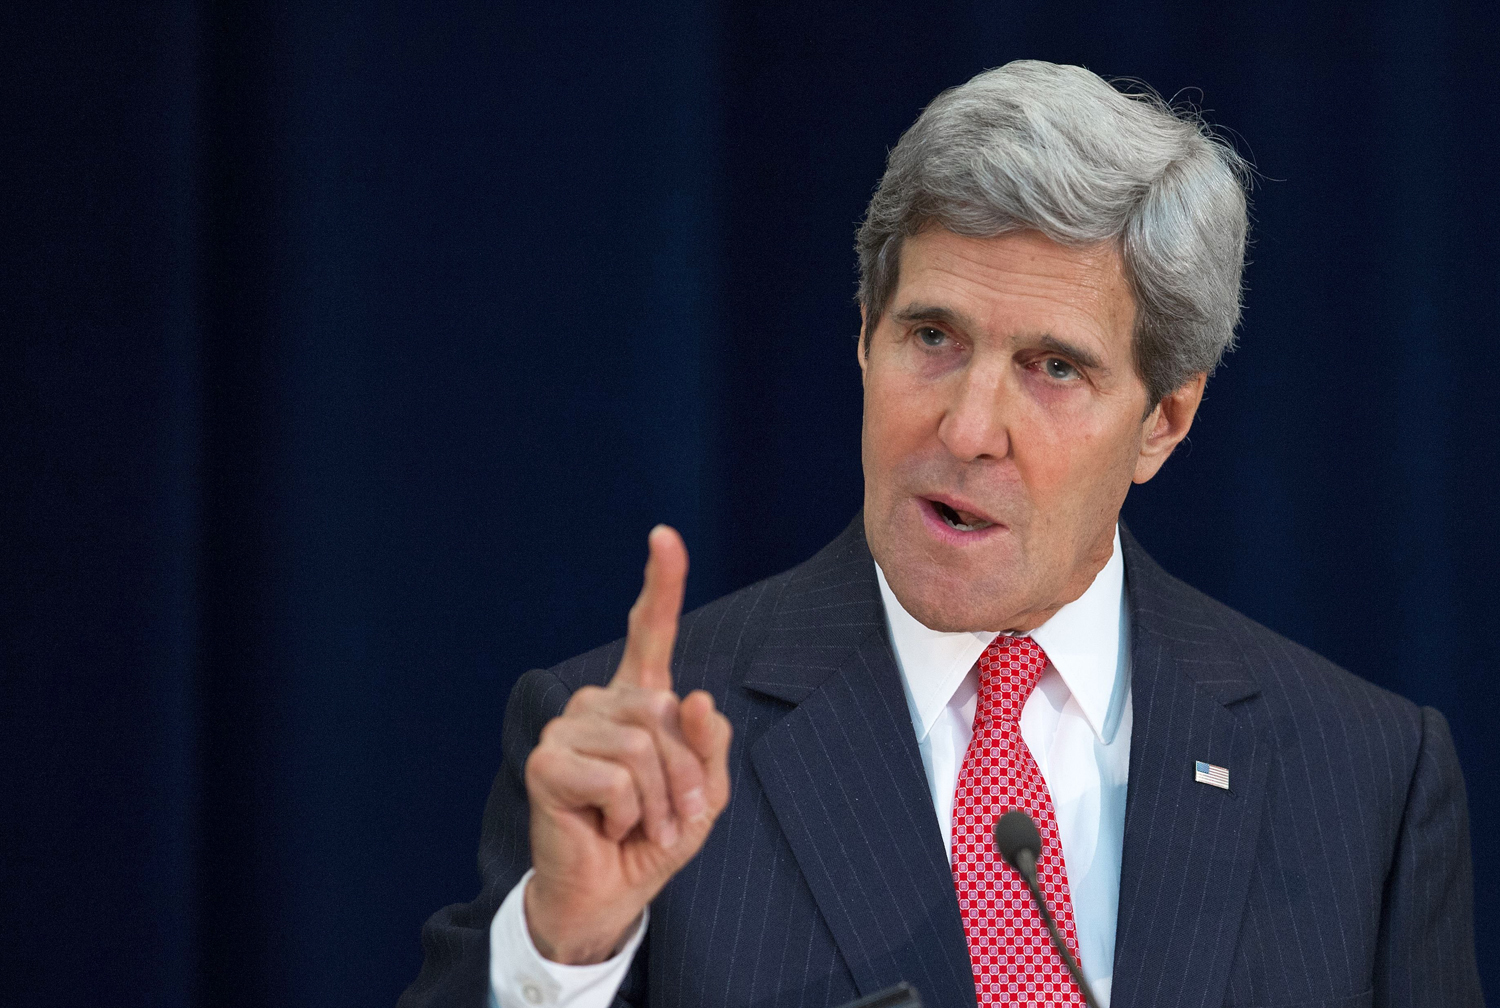 Image: US-DIPLOMACY-OSAC-KERRY